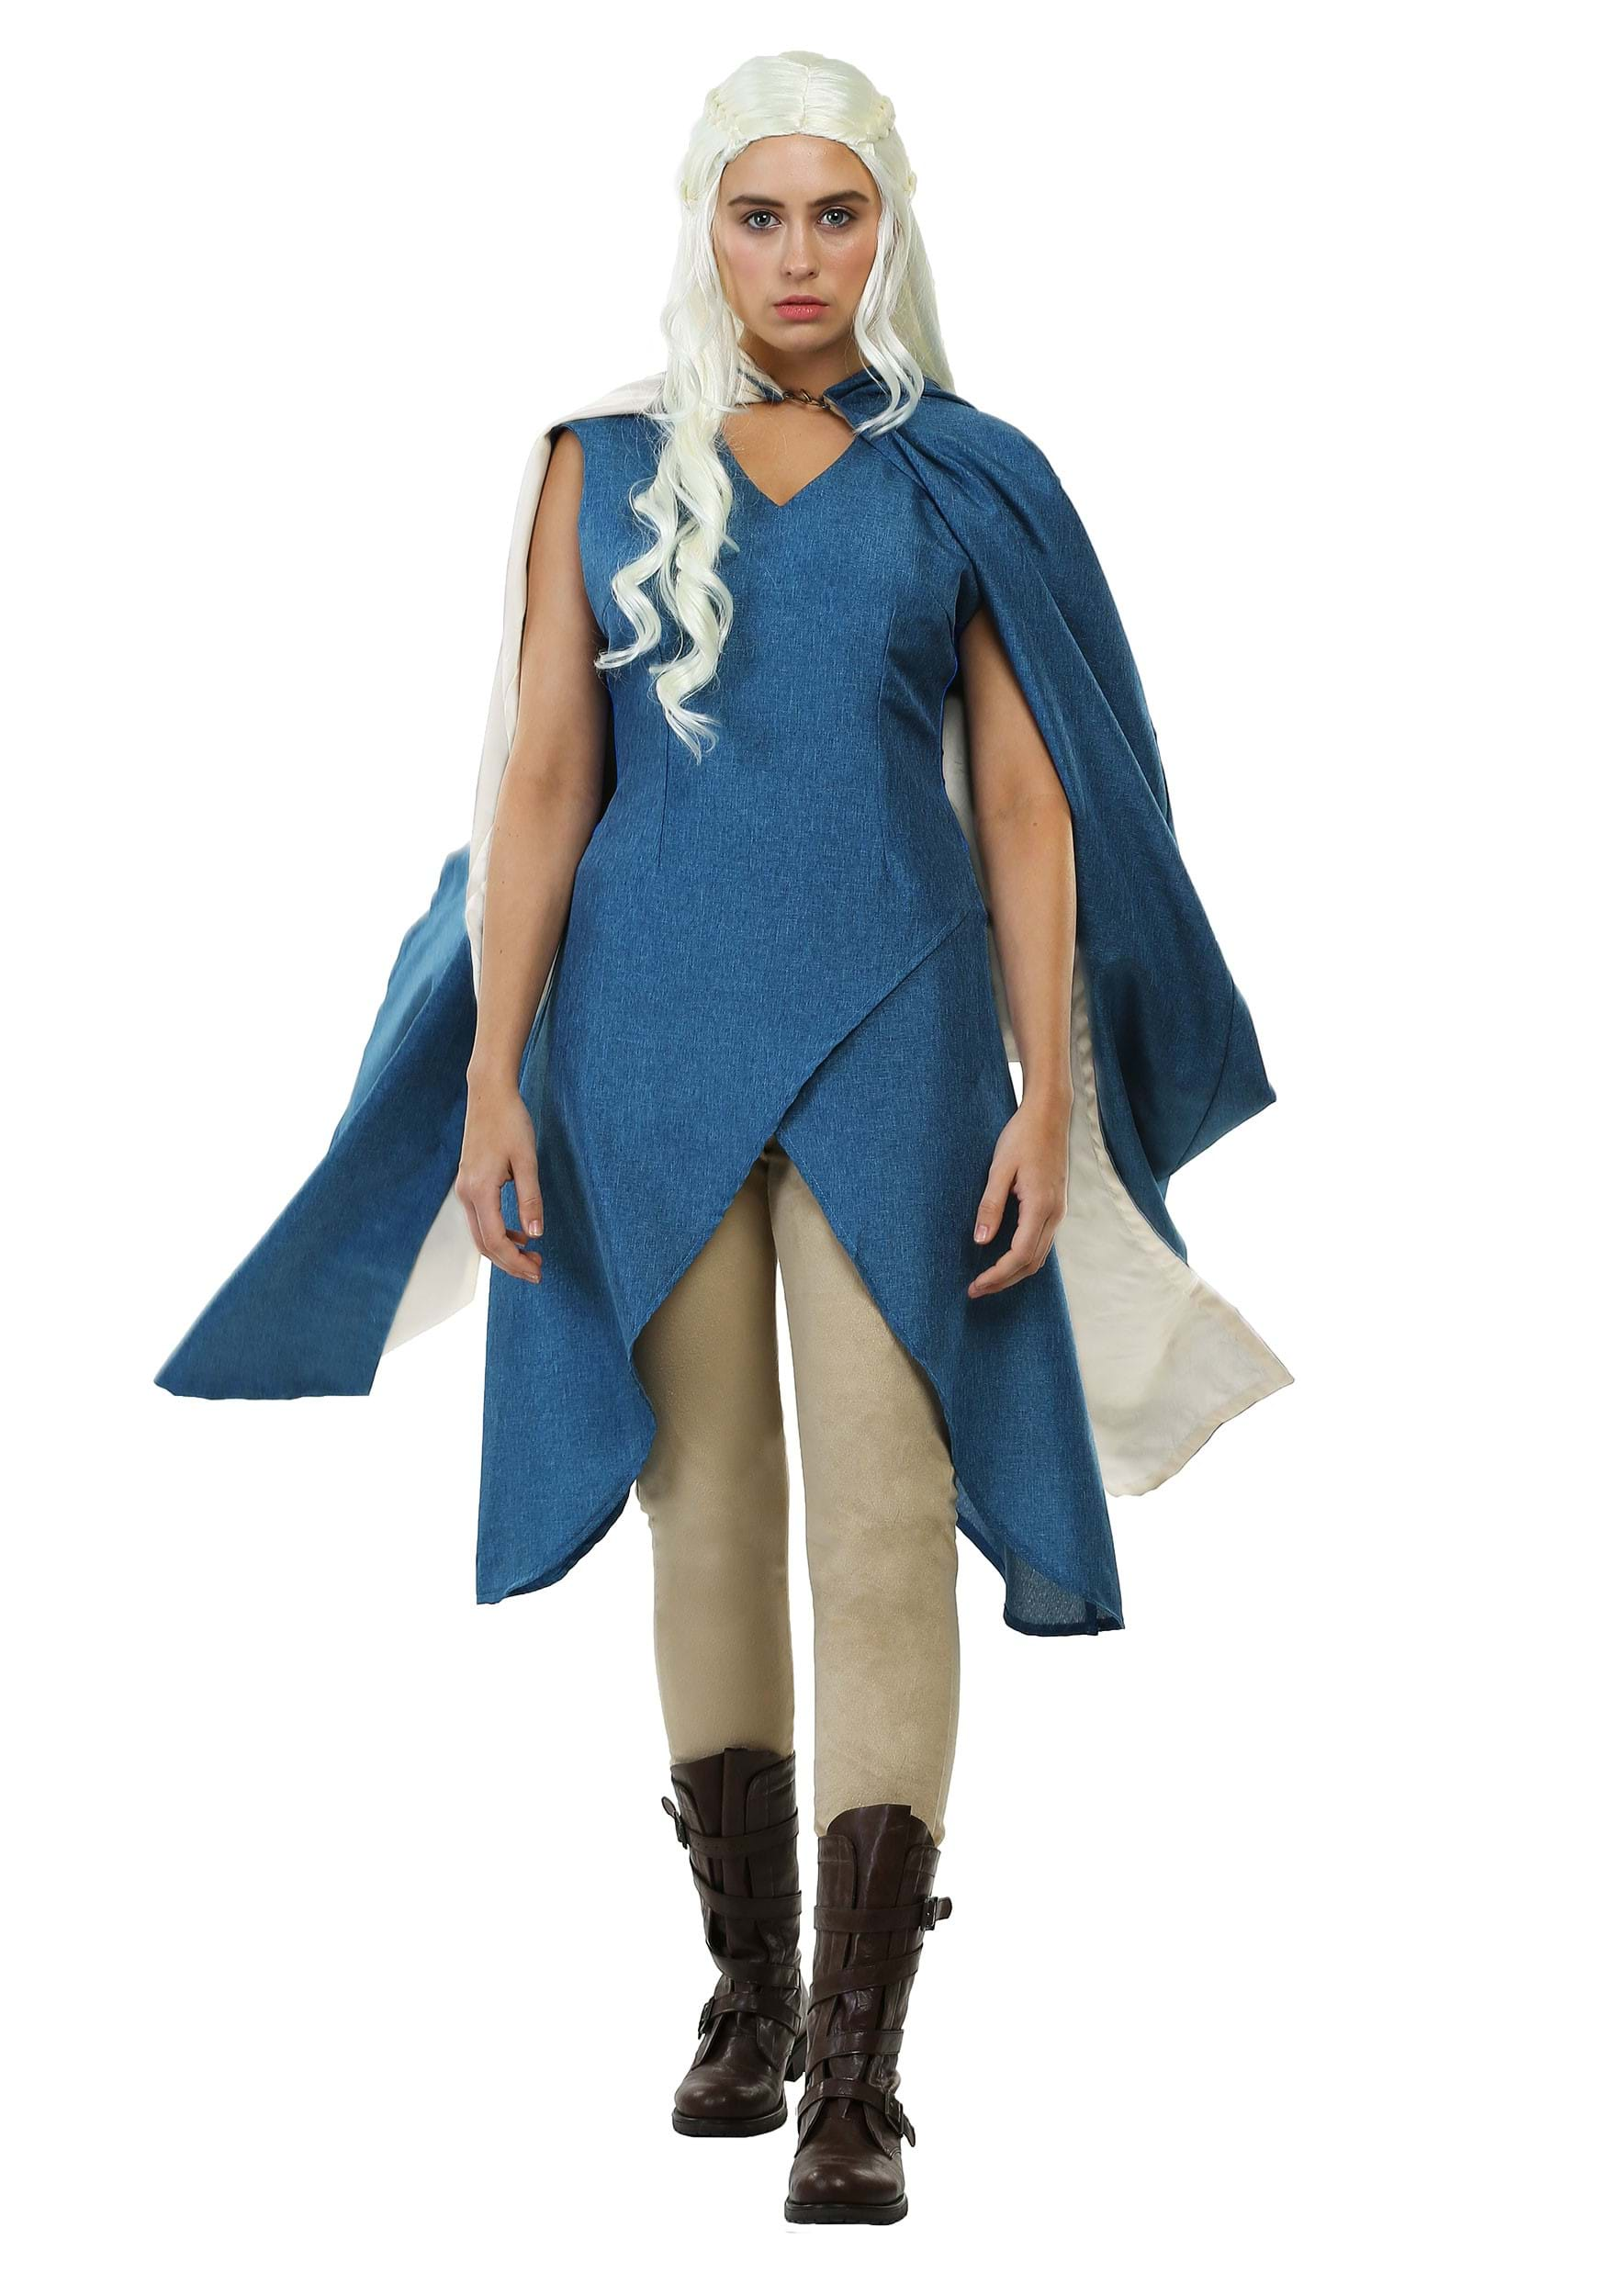 Adult Halloween Costumes - HalloweenCostumes.com